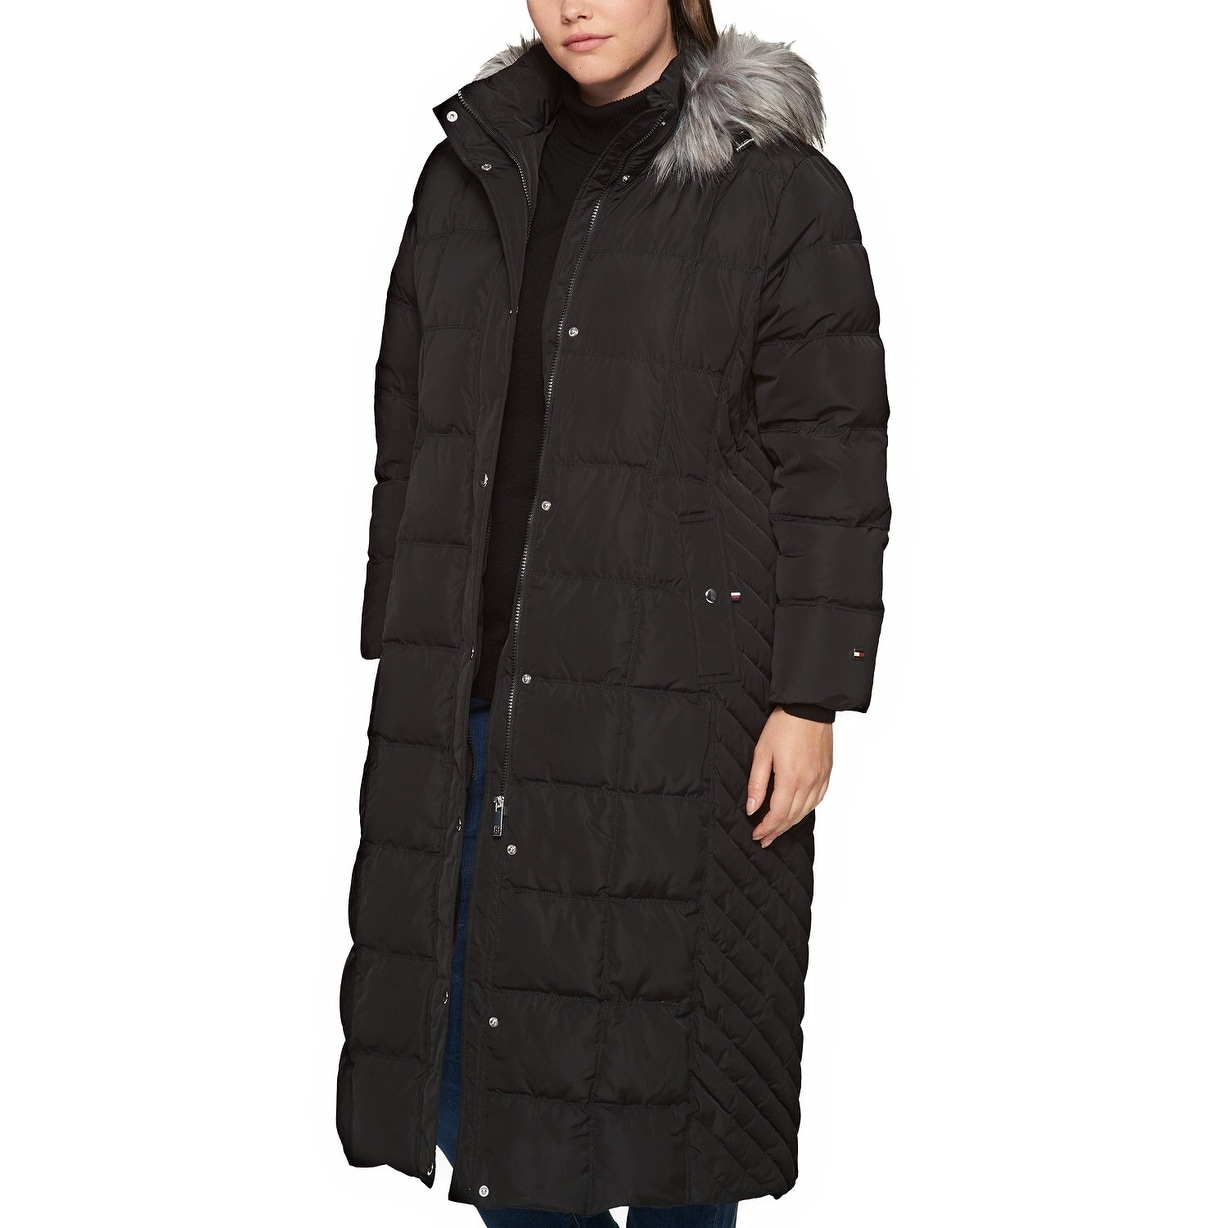 7f6af61dbd6 Shop Tommy Hilfiger Plus Size Faux Fur Trimmed Down Long Puffer Coat Black  - 3x - Free Shipping Today - Overstock - 24168332